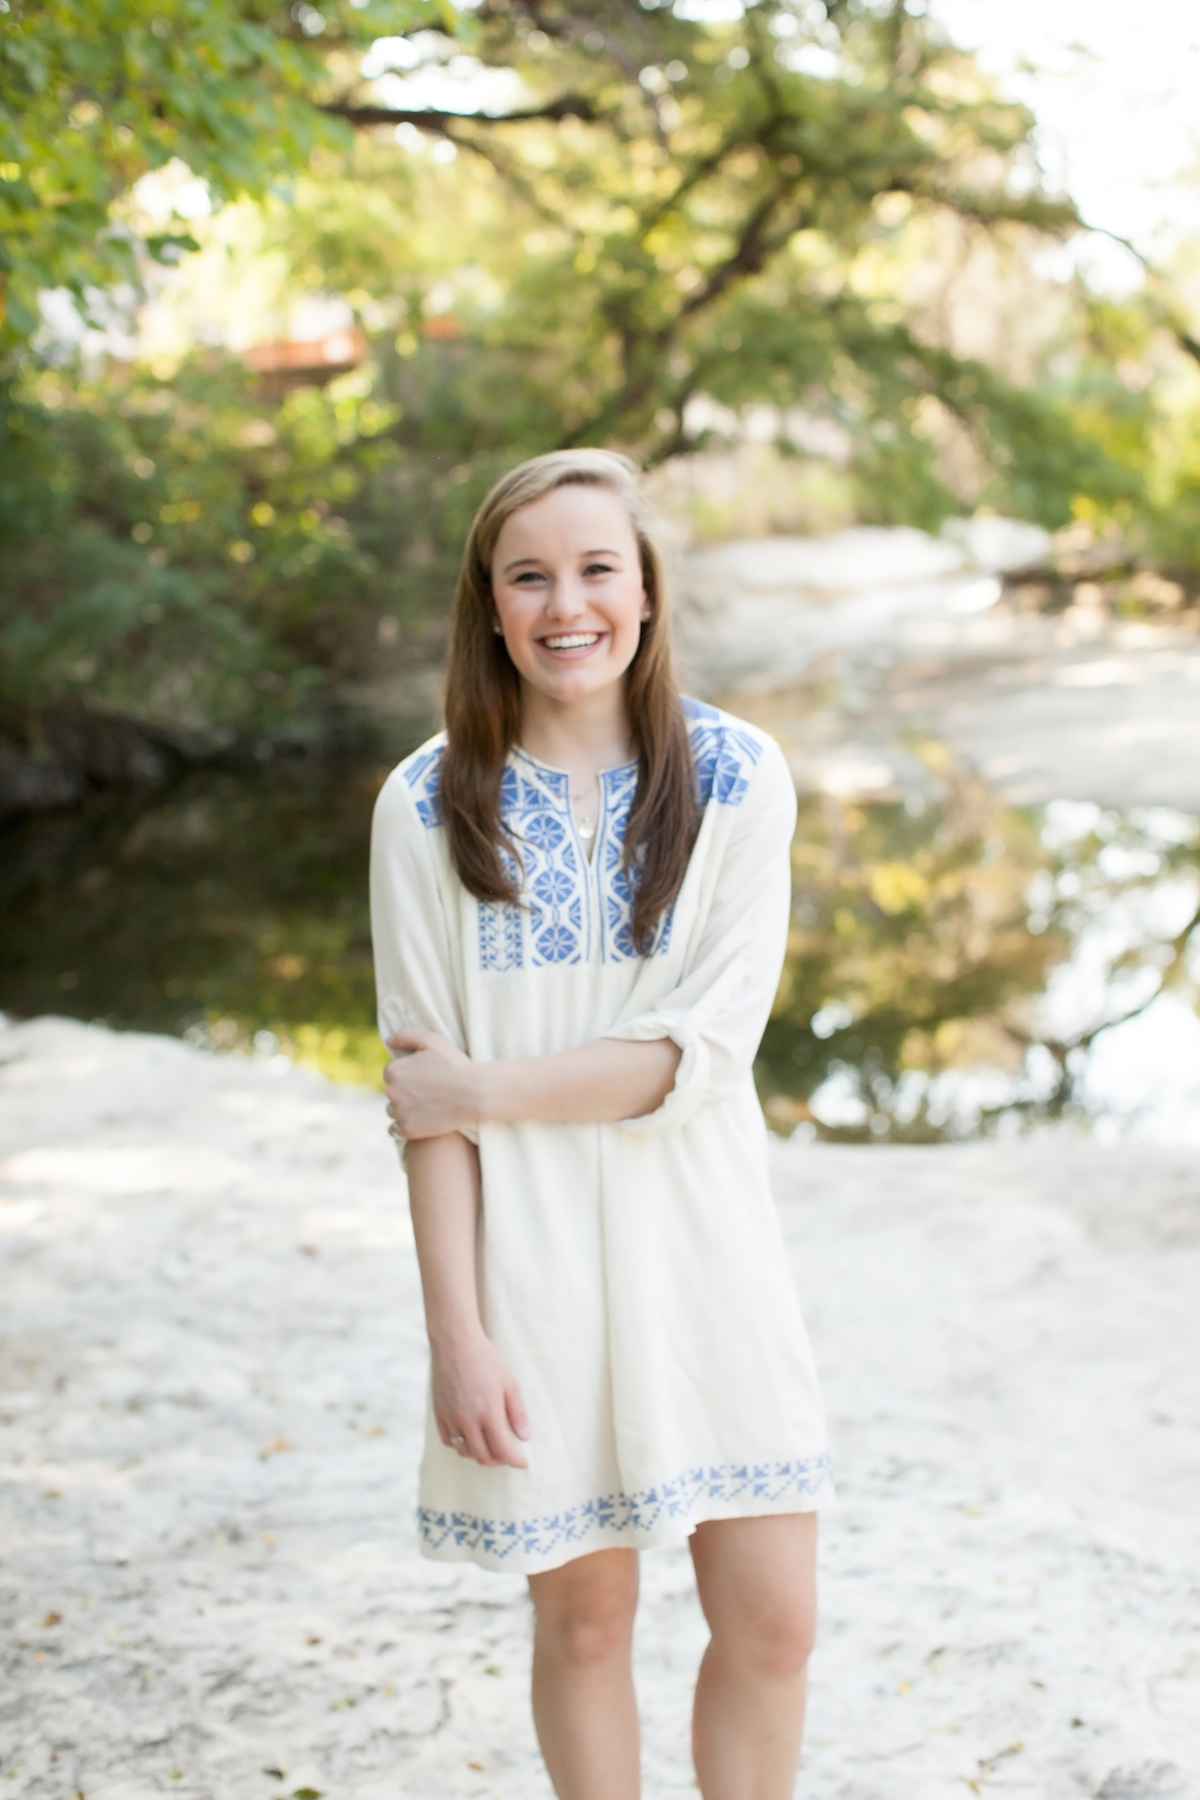 kate stafford photography | senior portraits